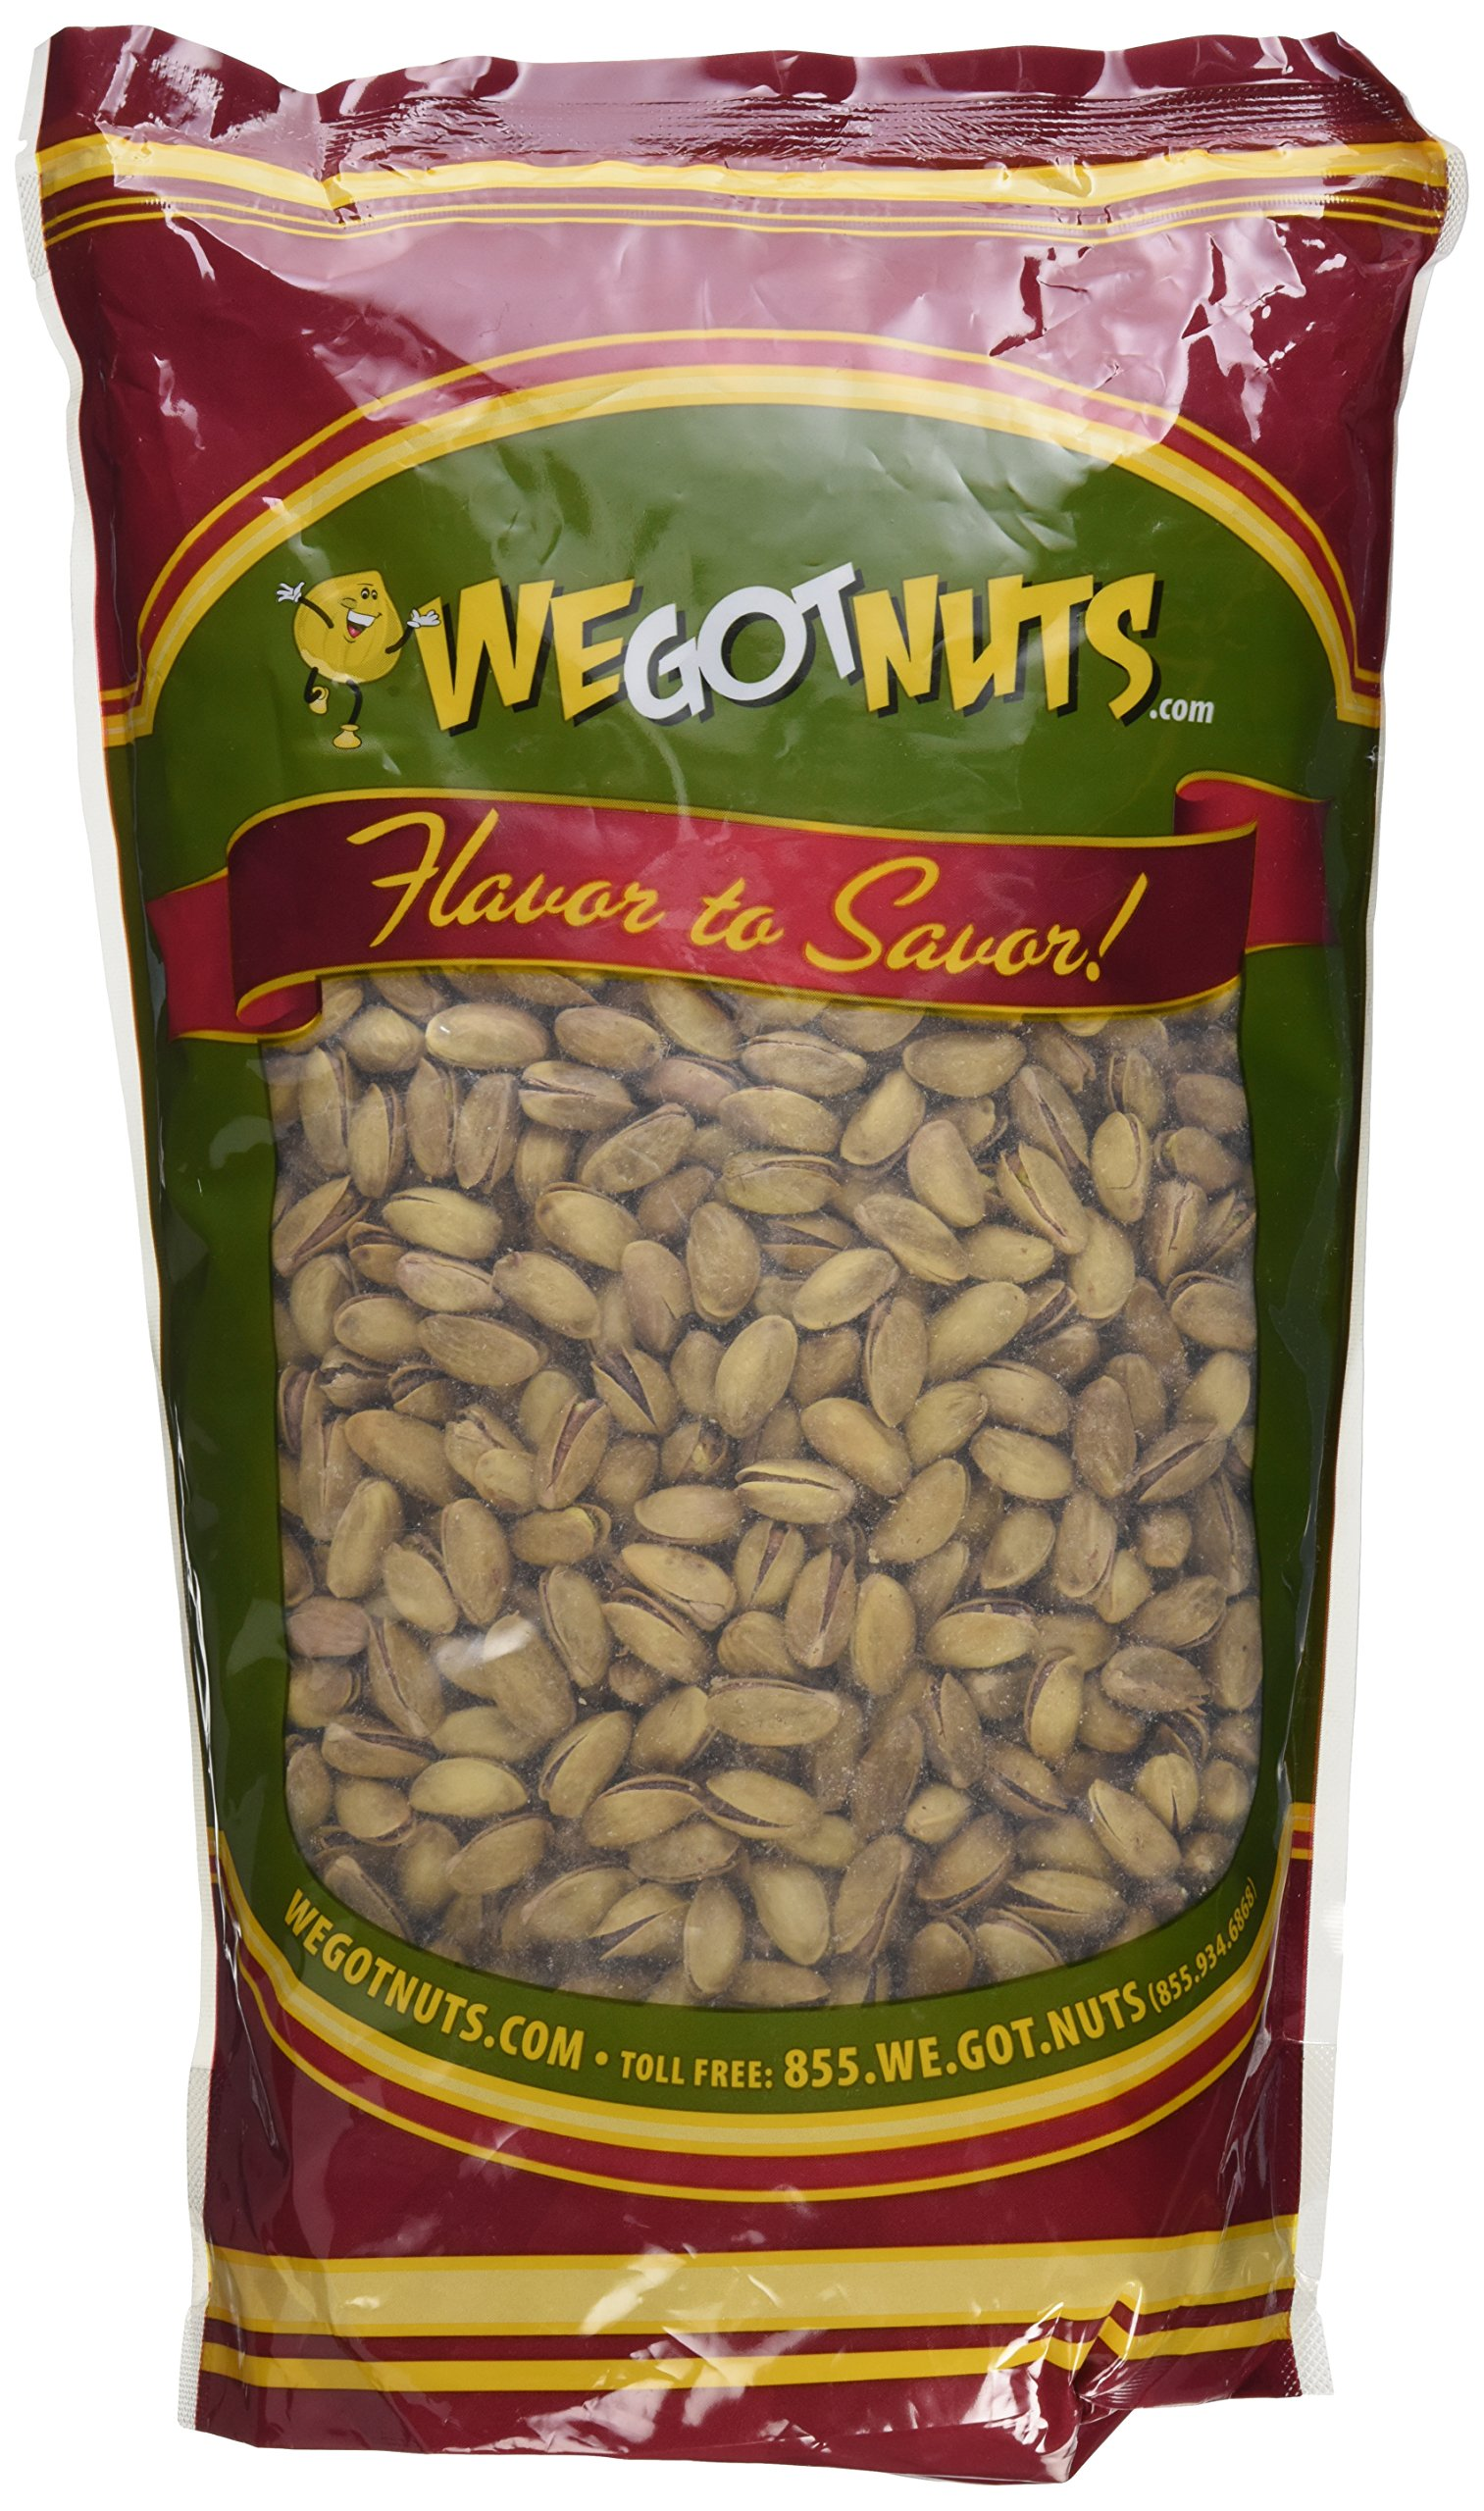 Turkish Pistachios Antep Roasted Salted, In Shell - We Got Nuts (5 LBS.) by We Got Nuts (Image #2)